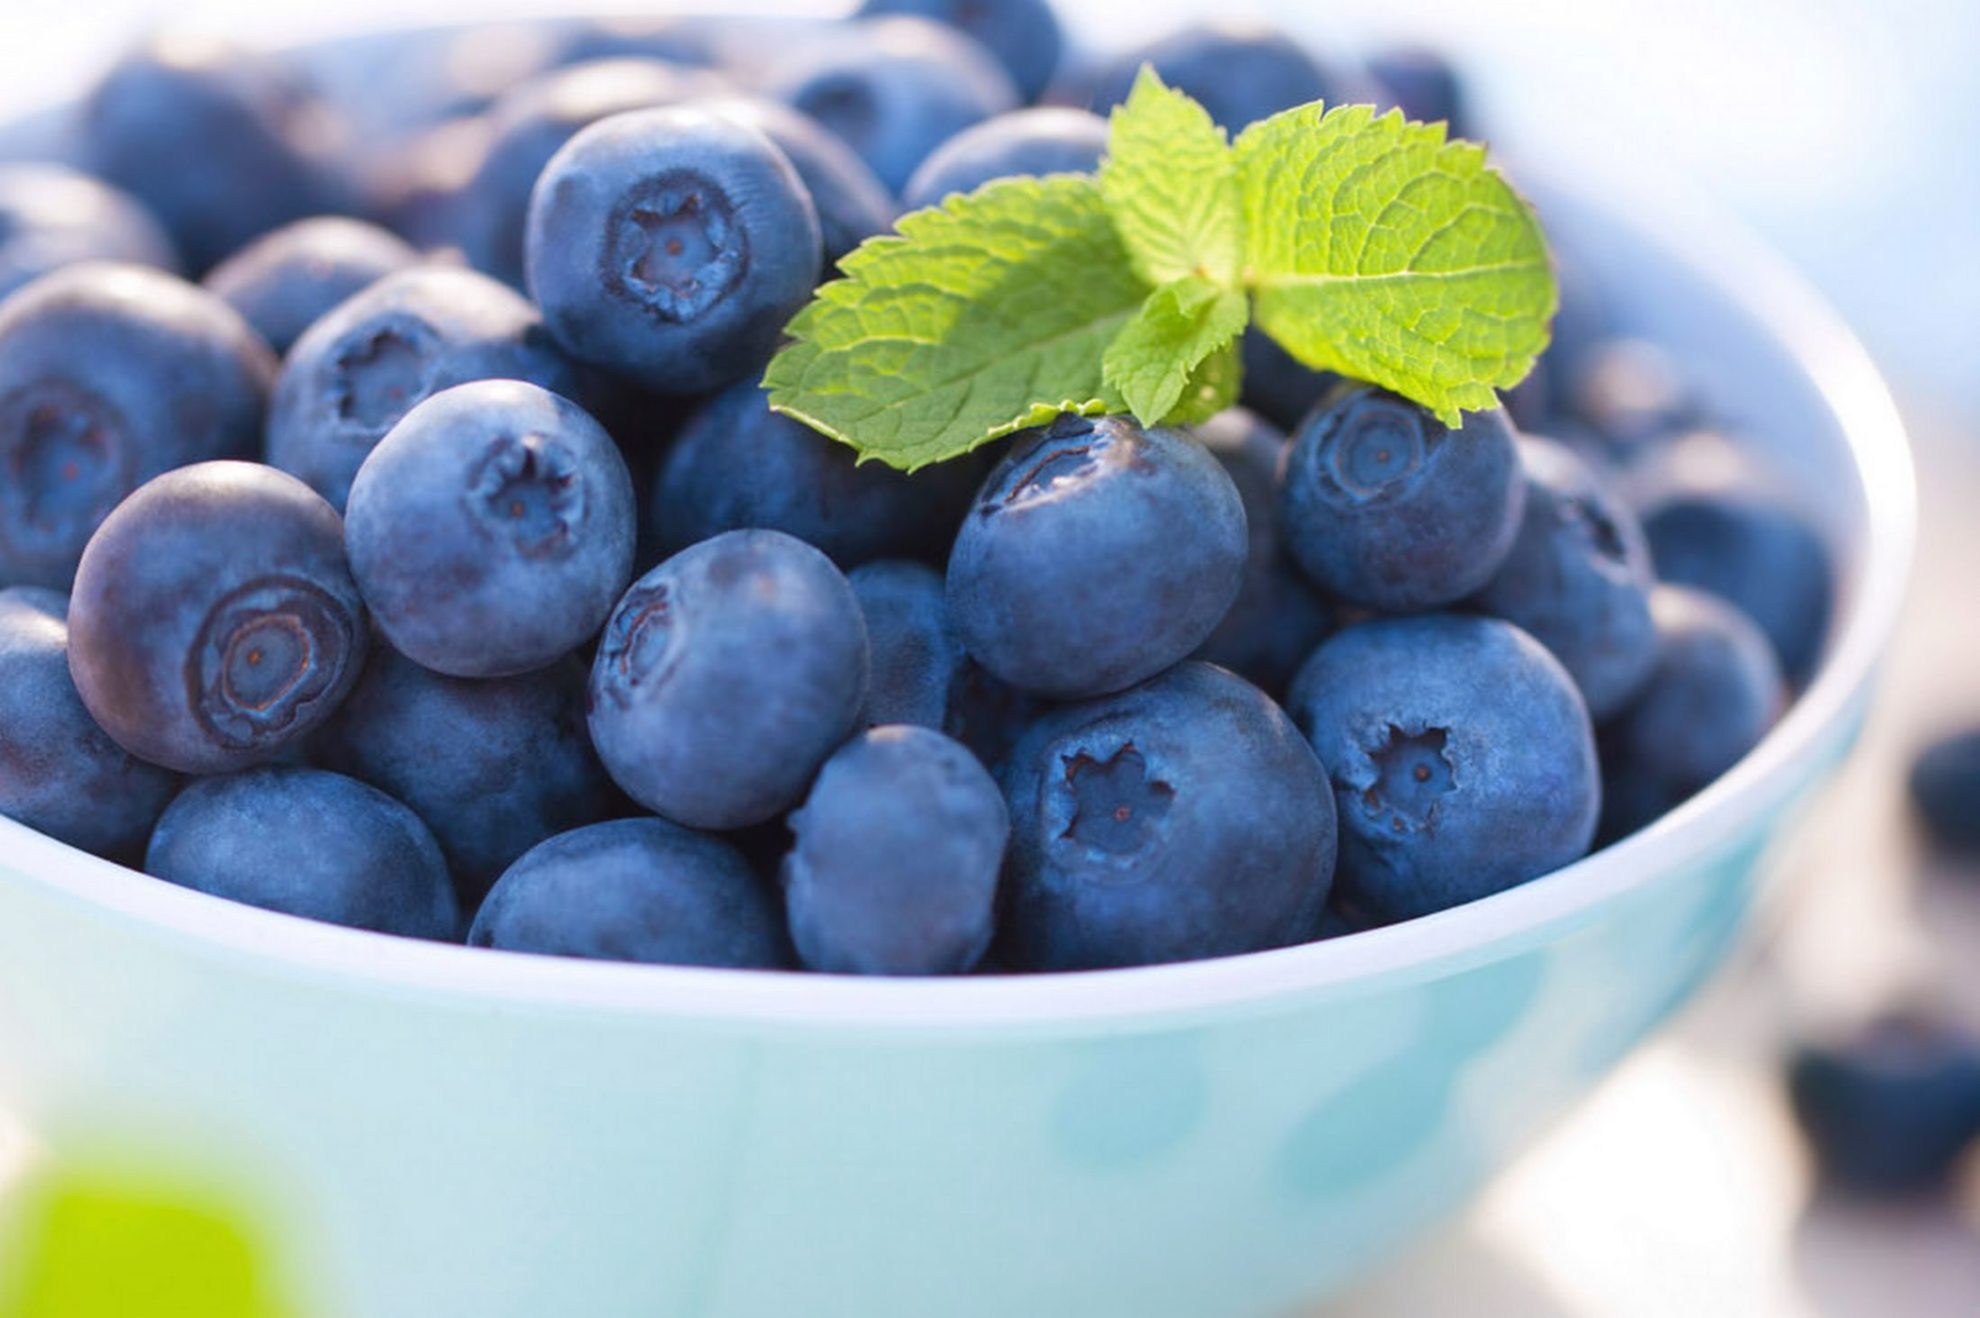 Blueberry Benefits: What Blueberry Antioxidants Mean To You!